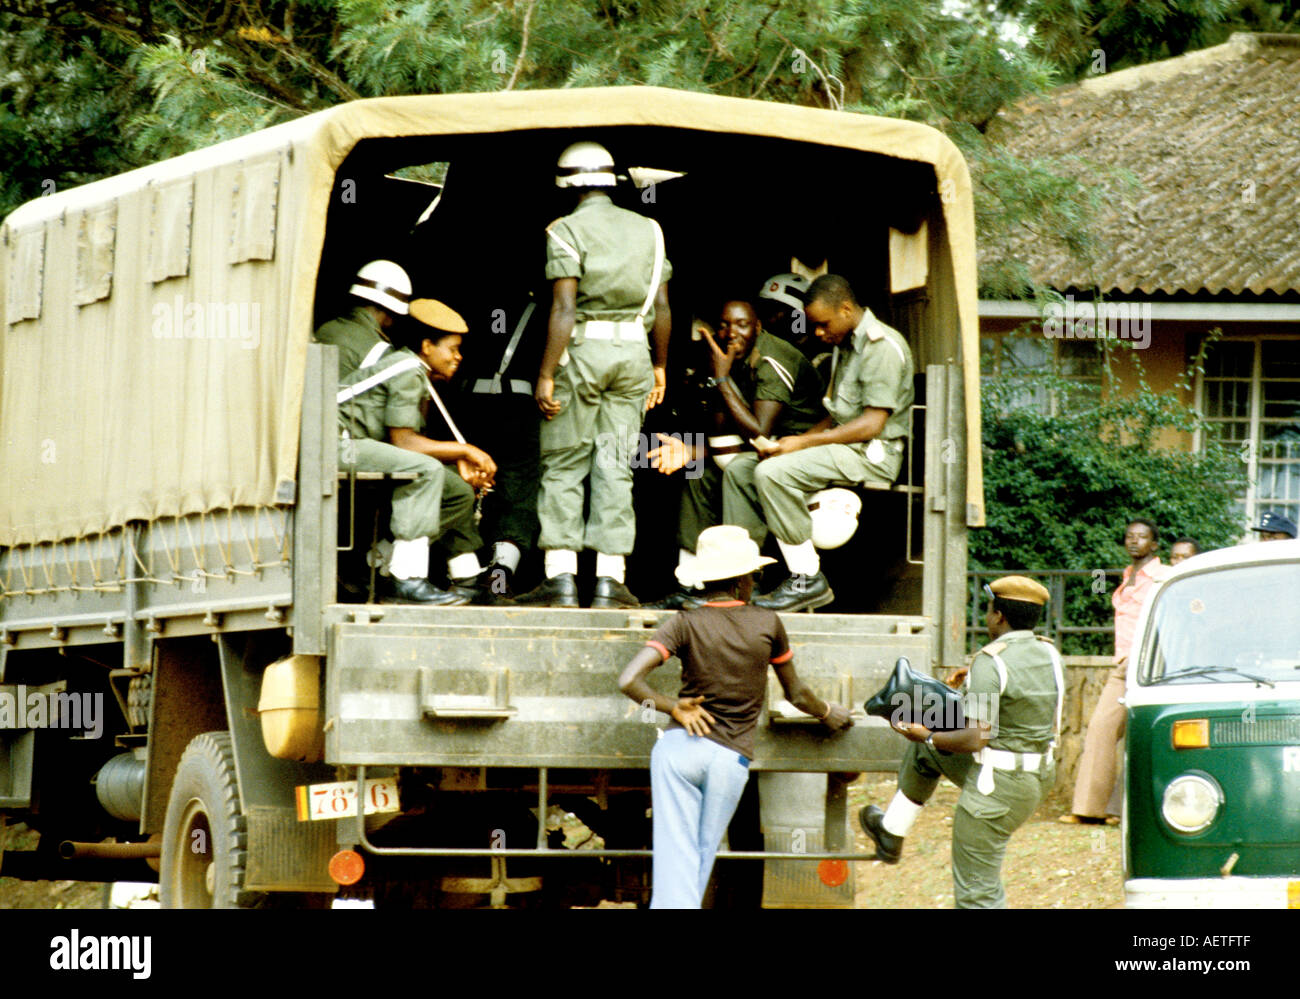 A contingent of the Rwandan Army - Stock Image